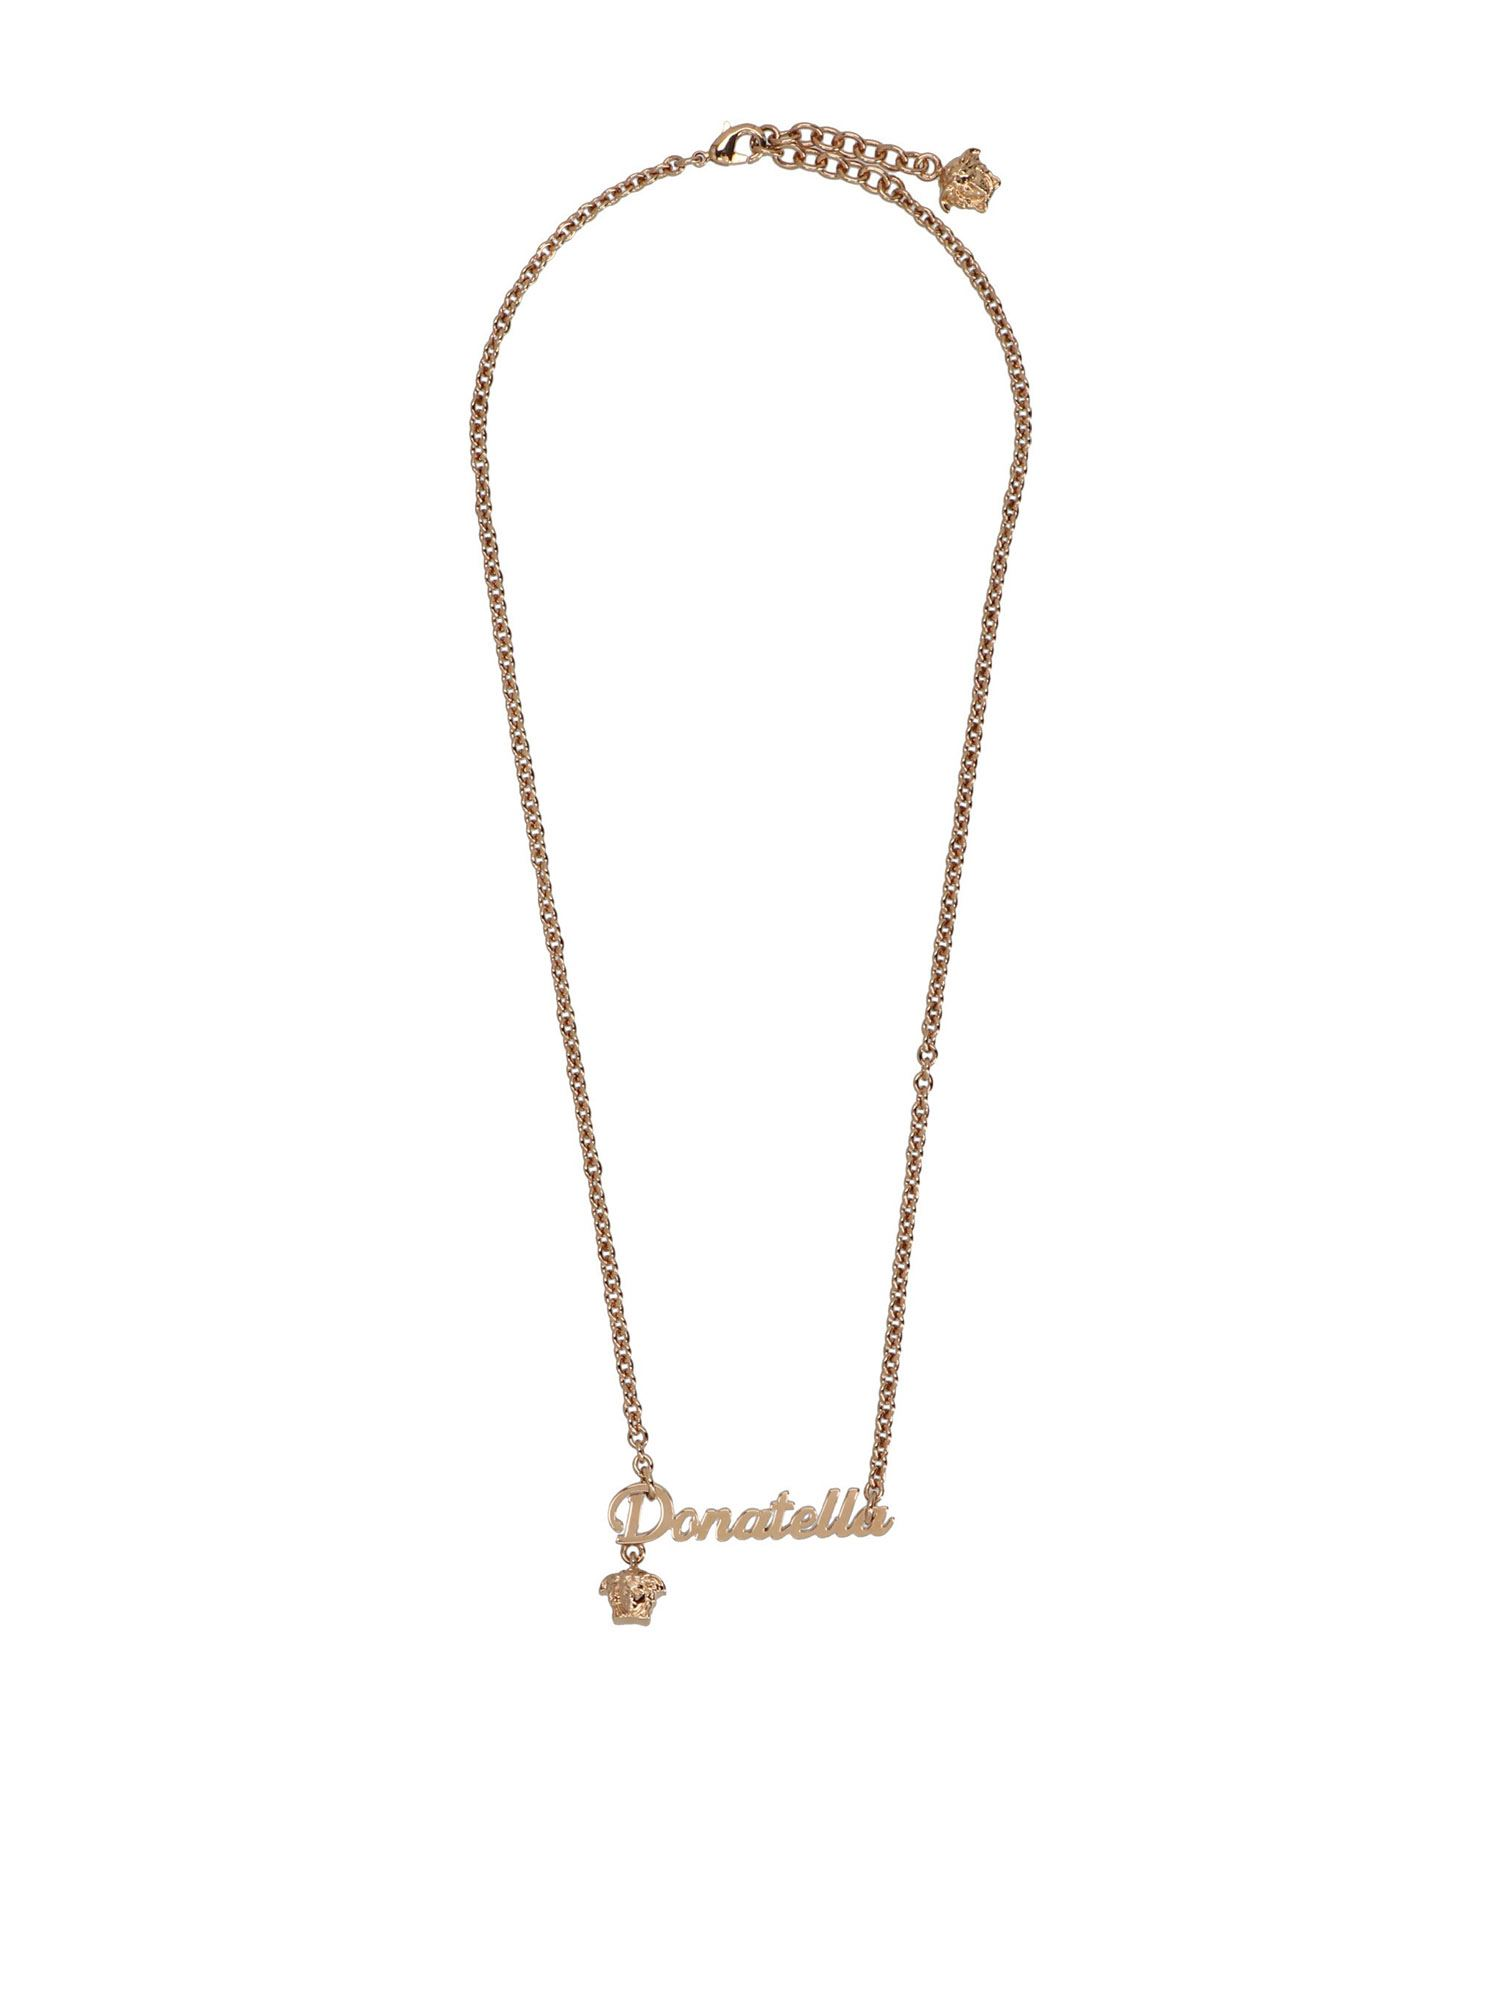 Versace DONATELLA NECKLACE IN GOLD FINISH